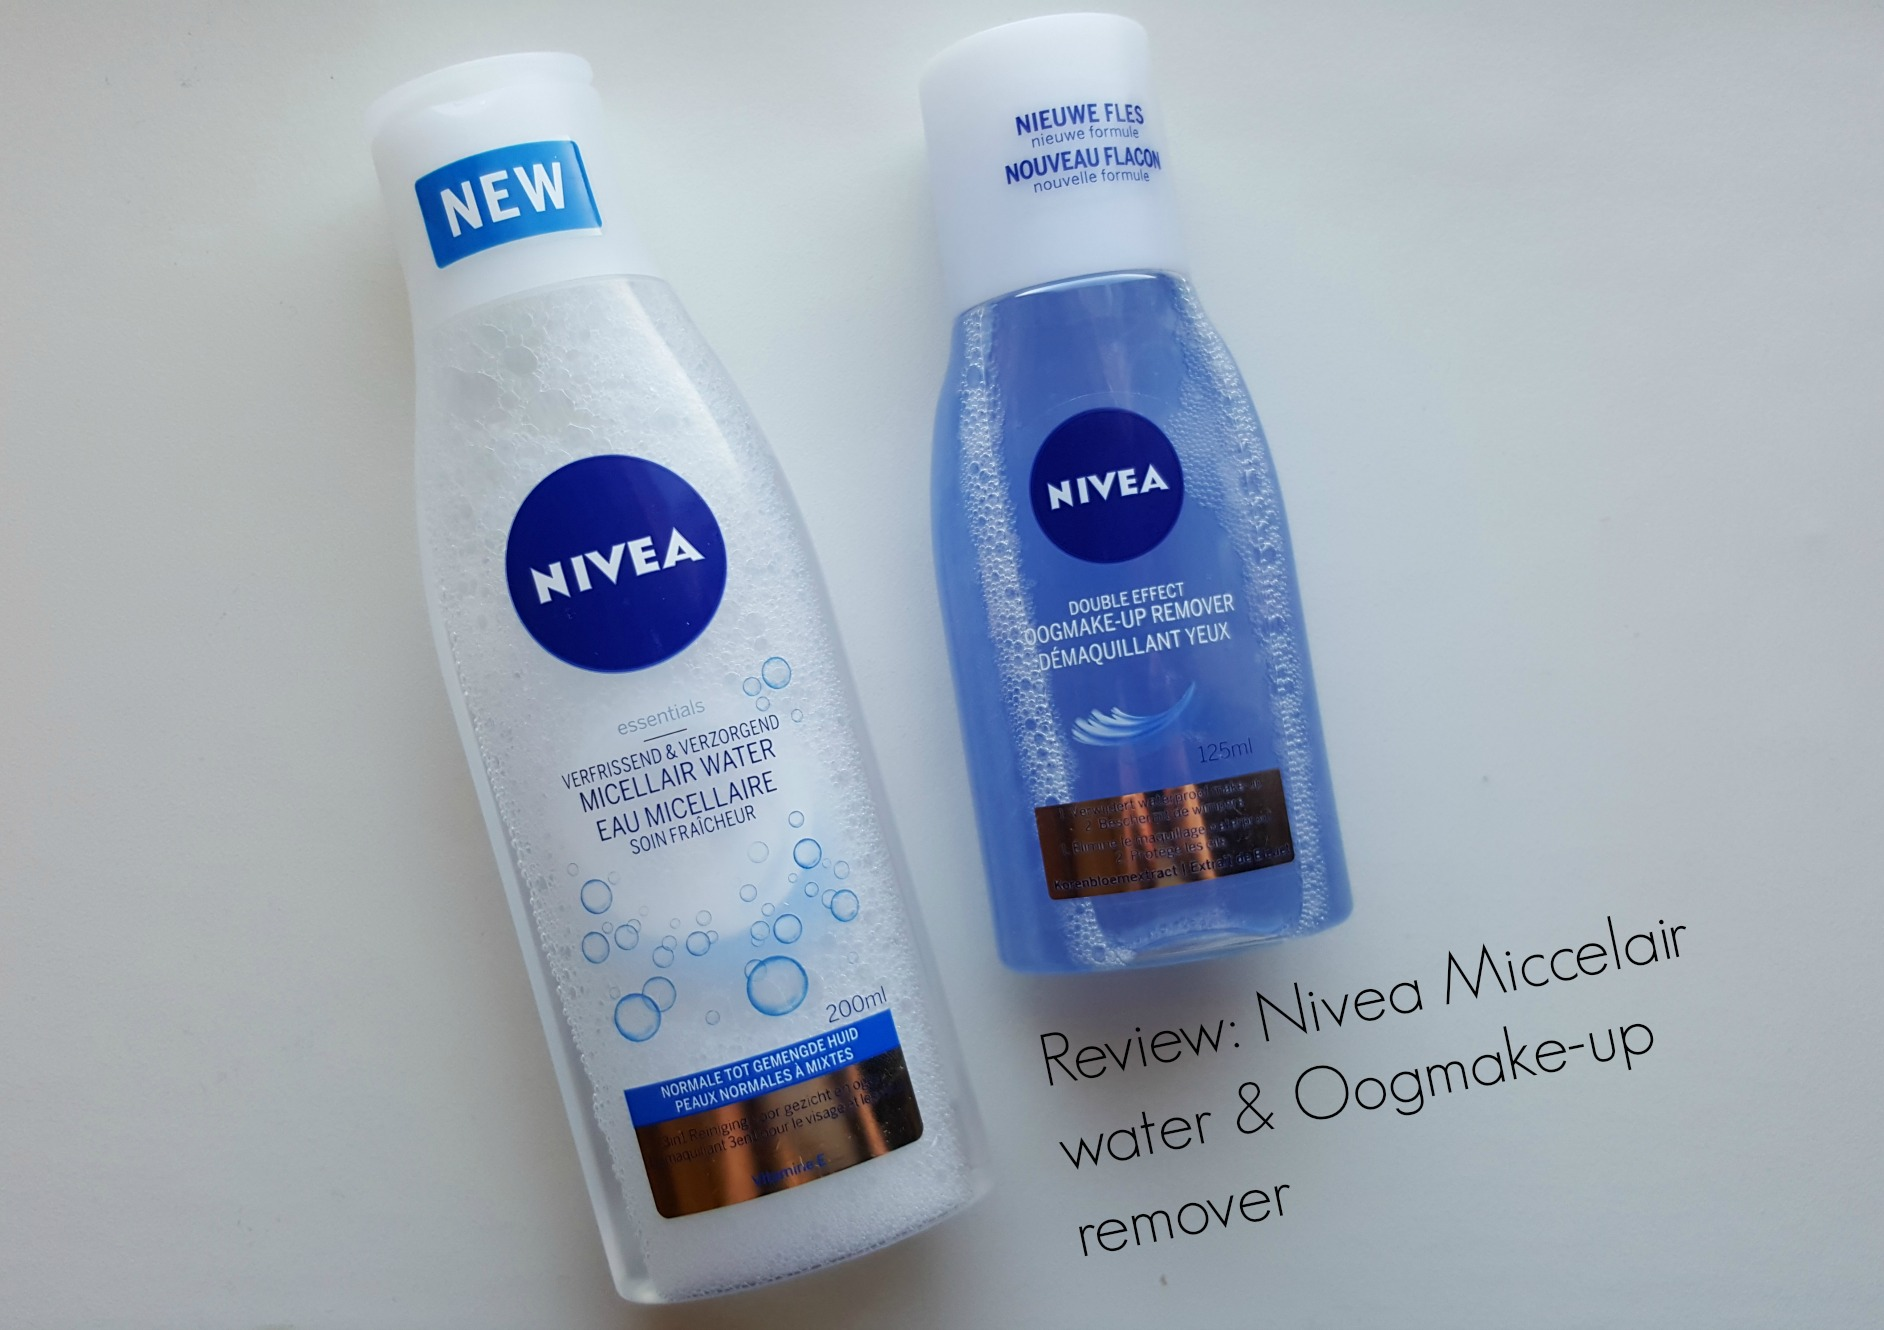 Review Nivea Micellair water